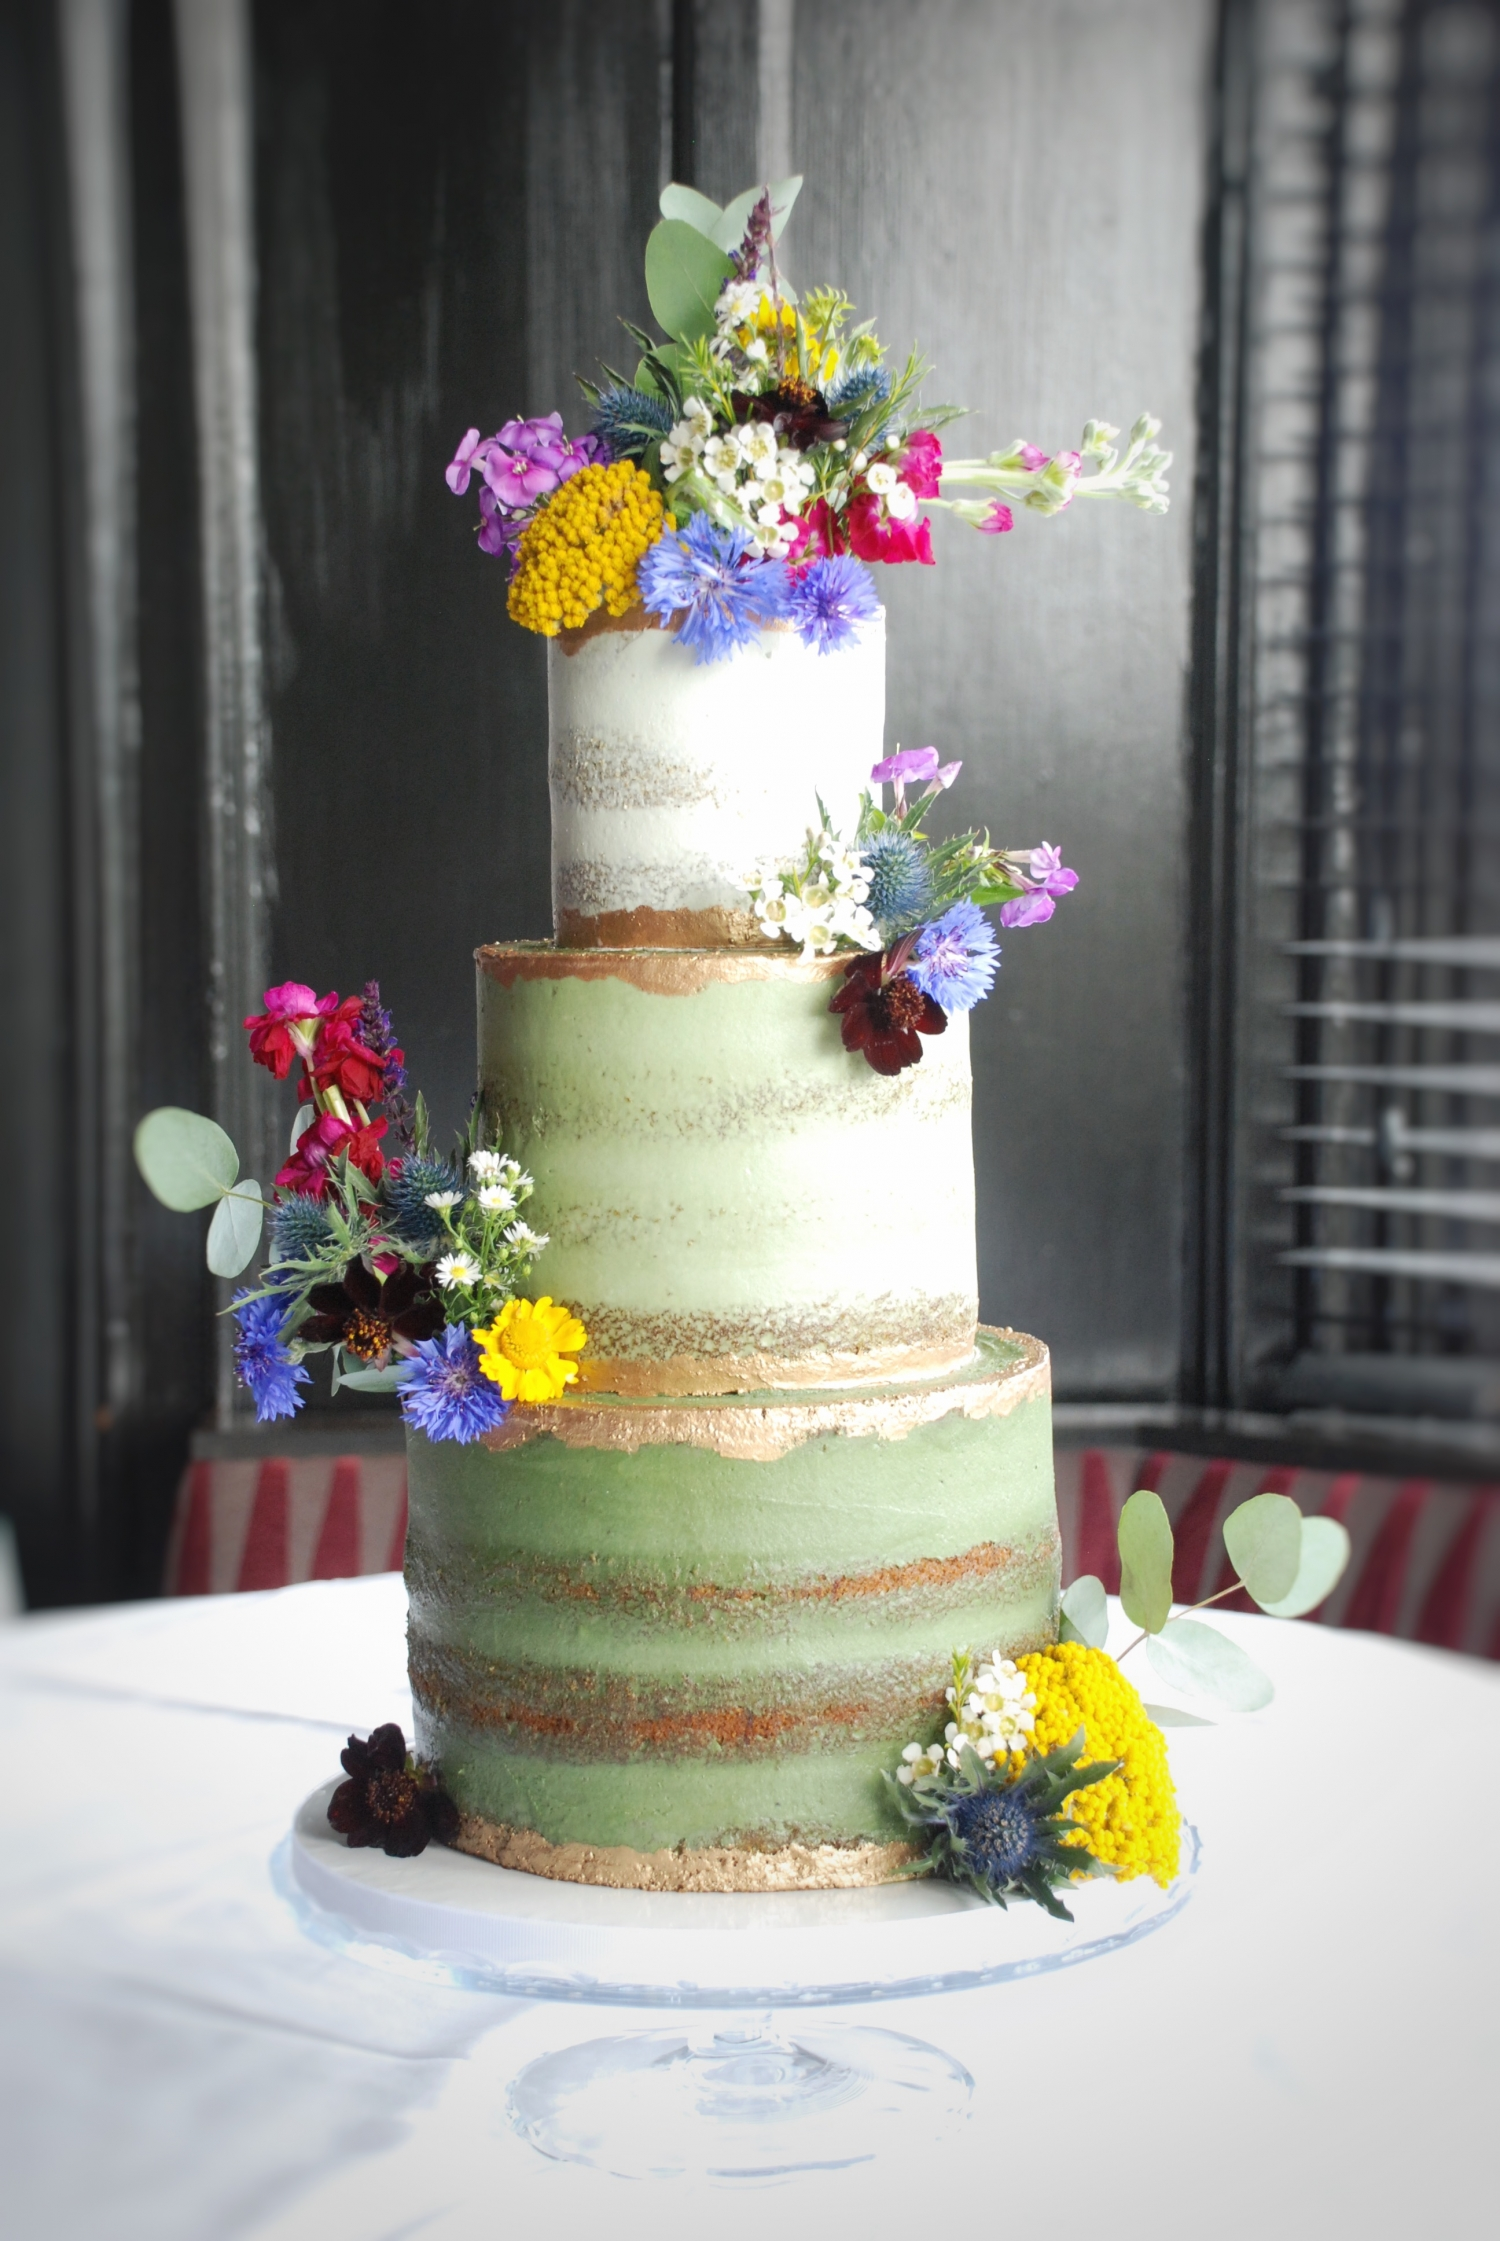 Semi naked green wedding cake with wildflowers